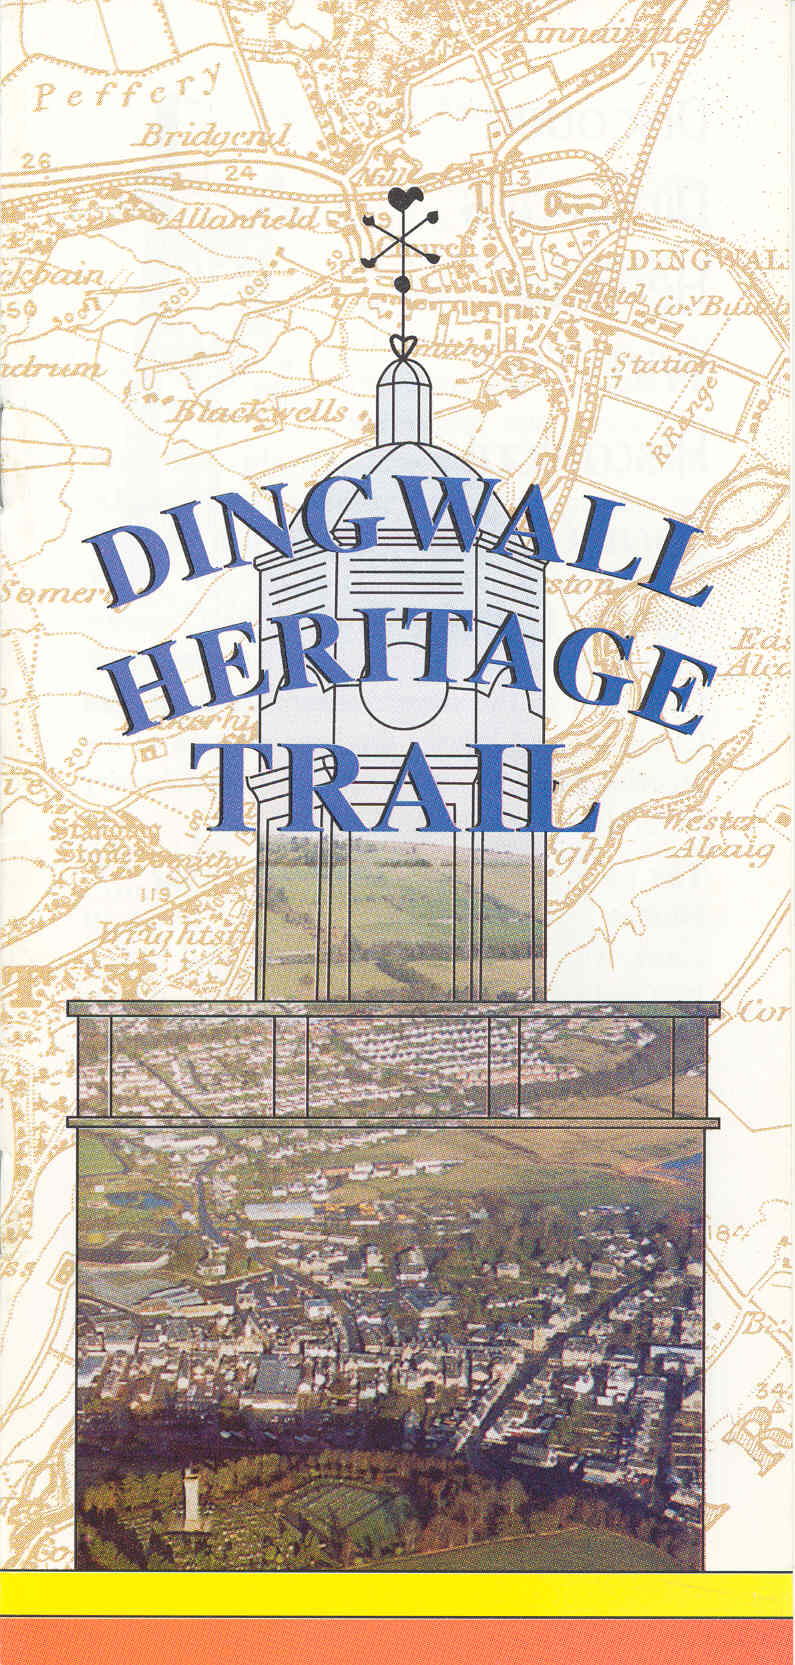 Dkngwall Heritage Trail